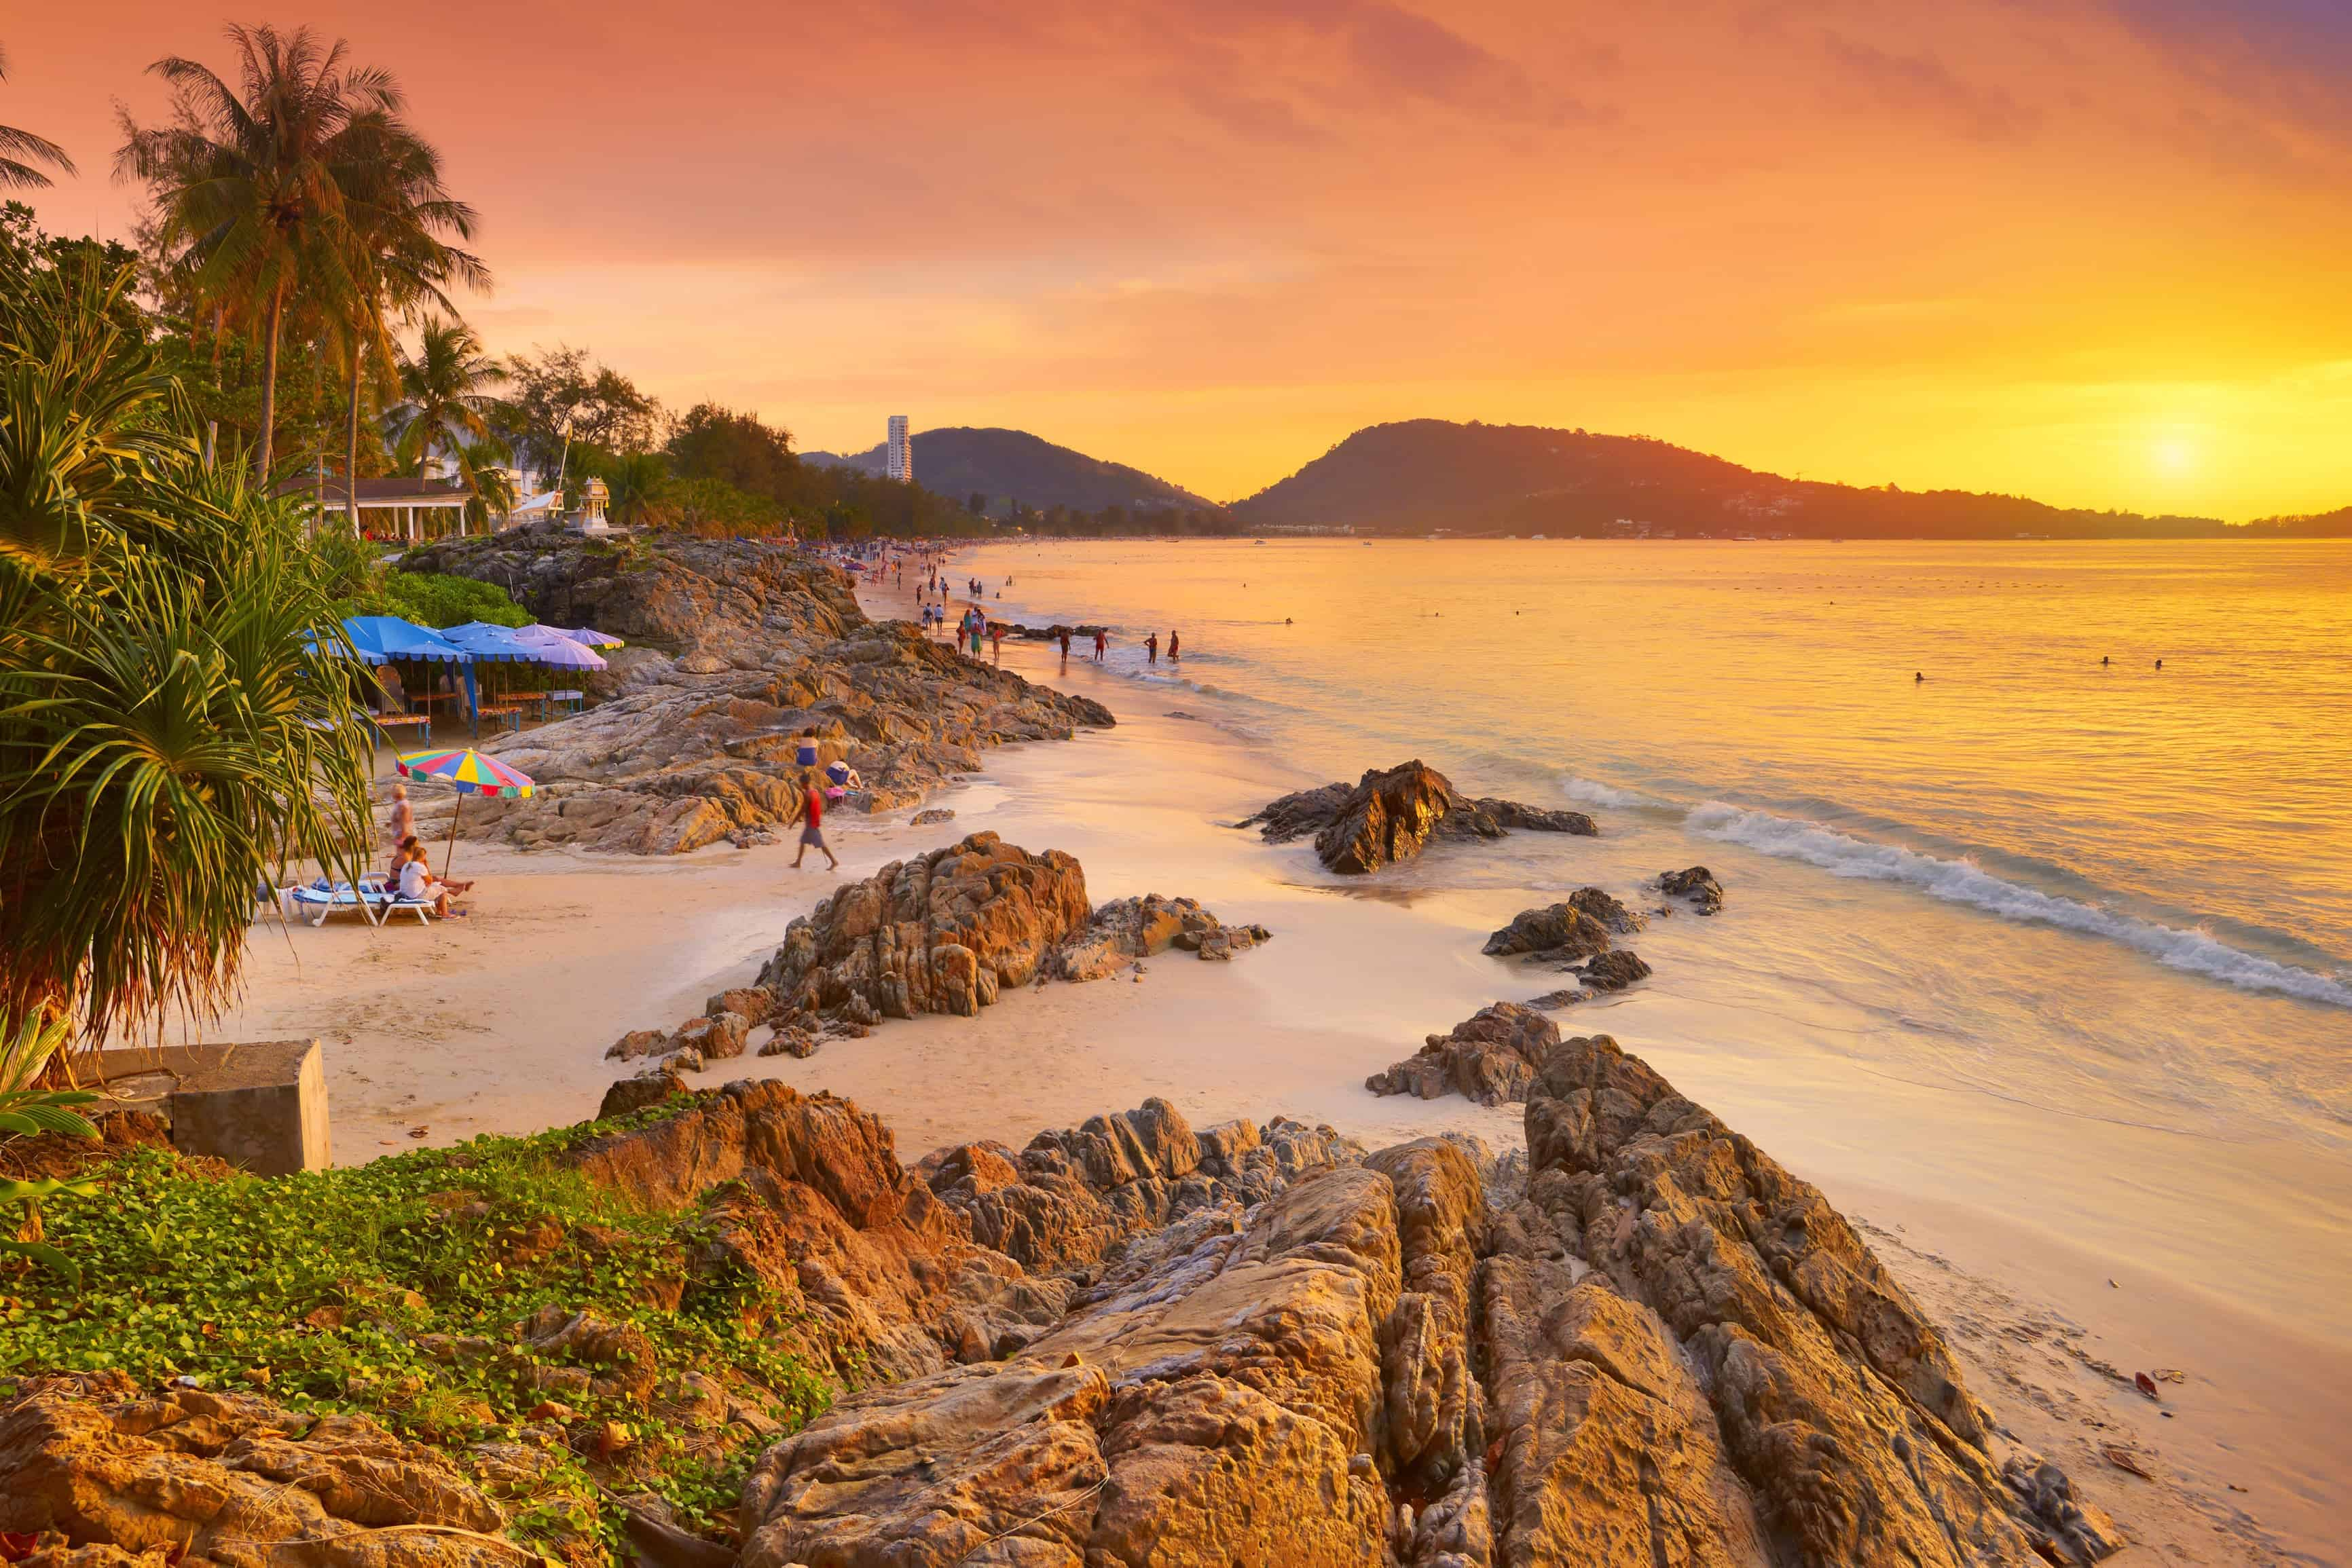 Phuket | Lifestyle in the well-trodden place